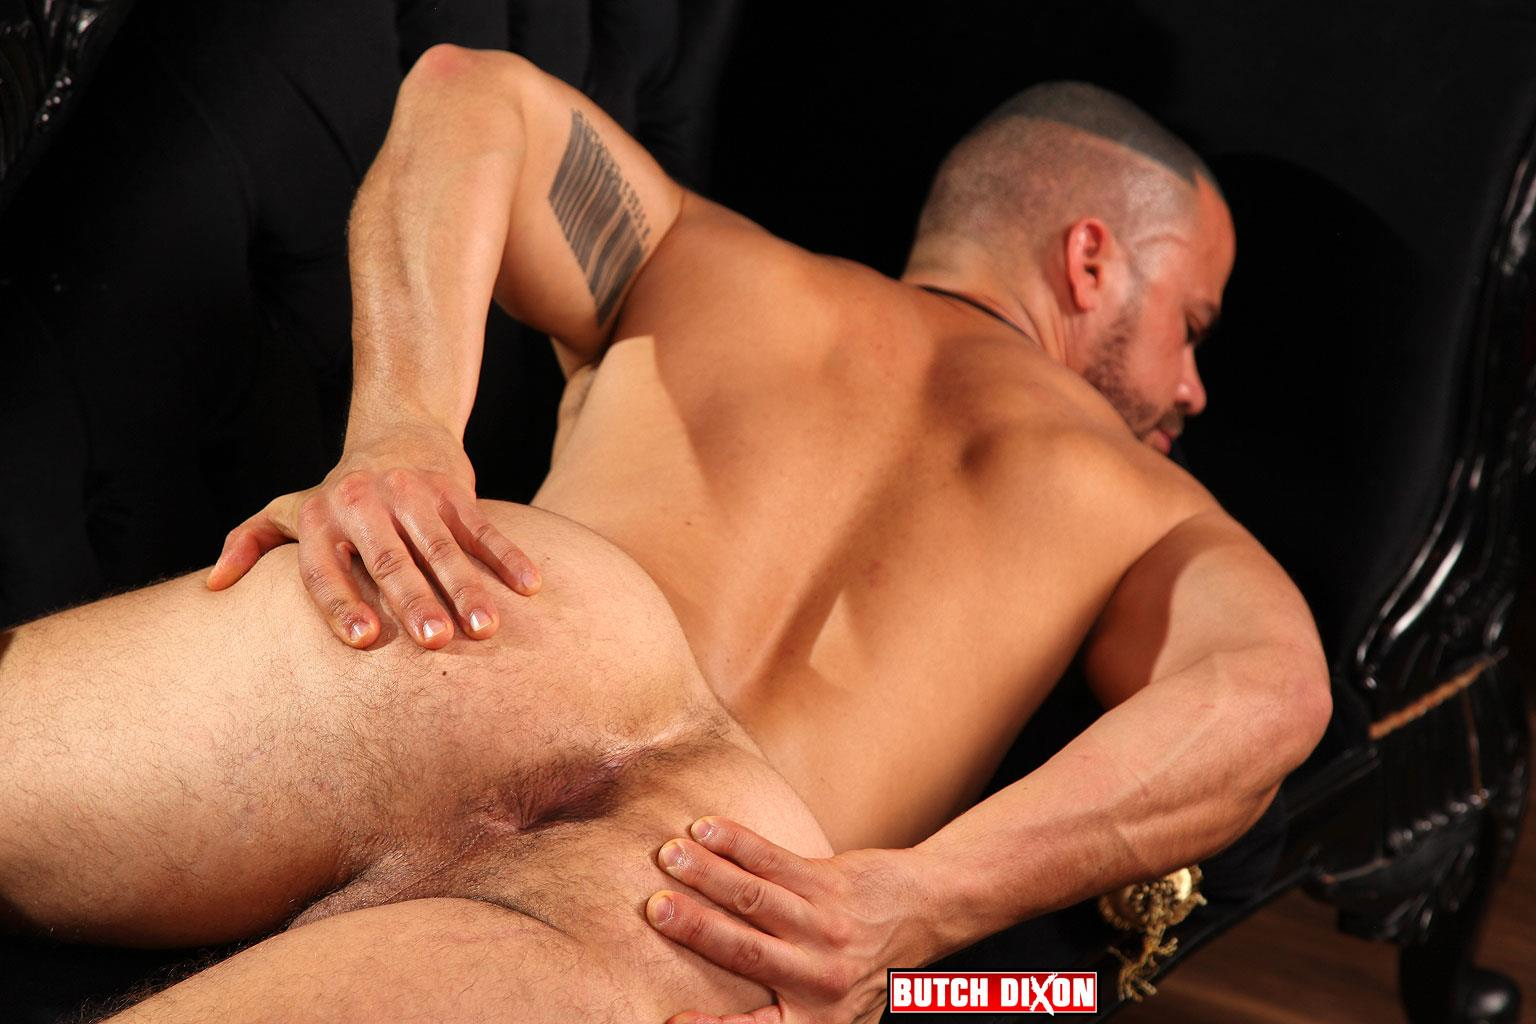 Butch Dixon Delta Kobra Muscle Hunk With A Big Uncut Cock Jerking Off Amateur Gay Porn 15 Amateur Muscle Hunk Delta Kobra Jerks His Big Thick Uncut Cock